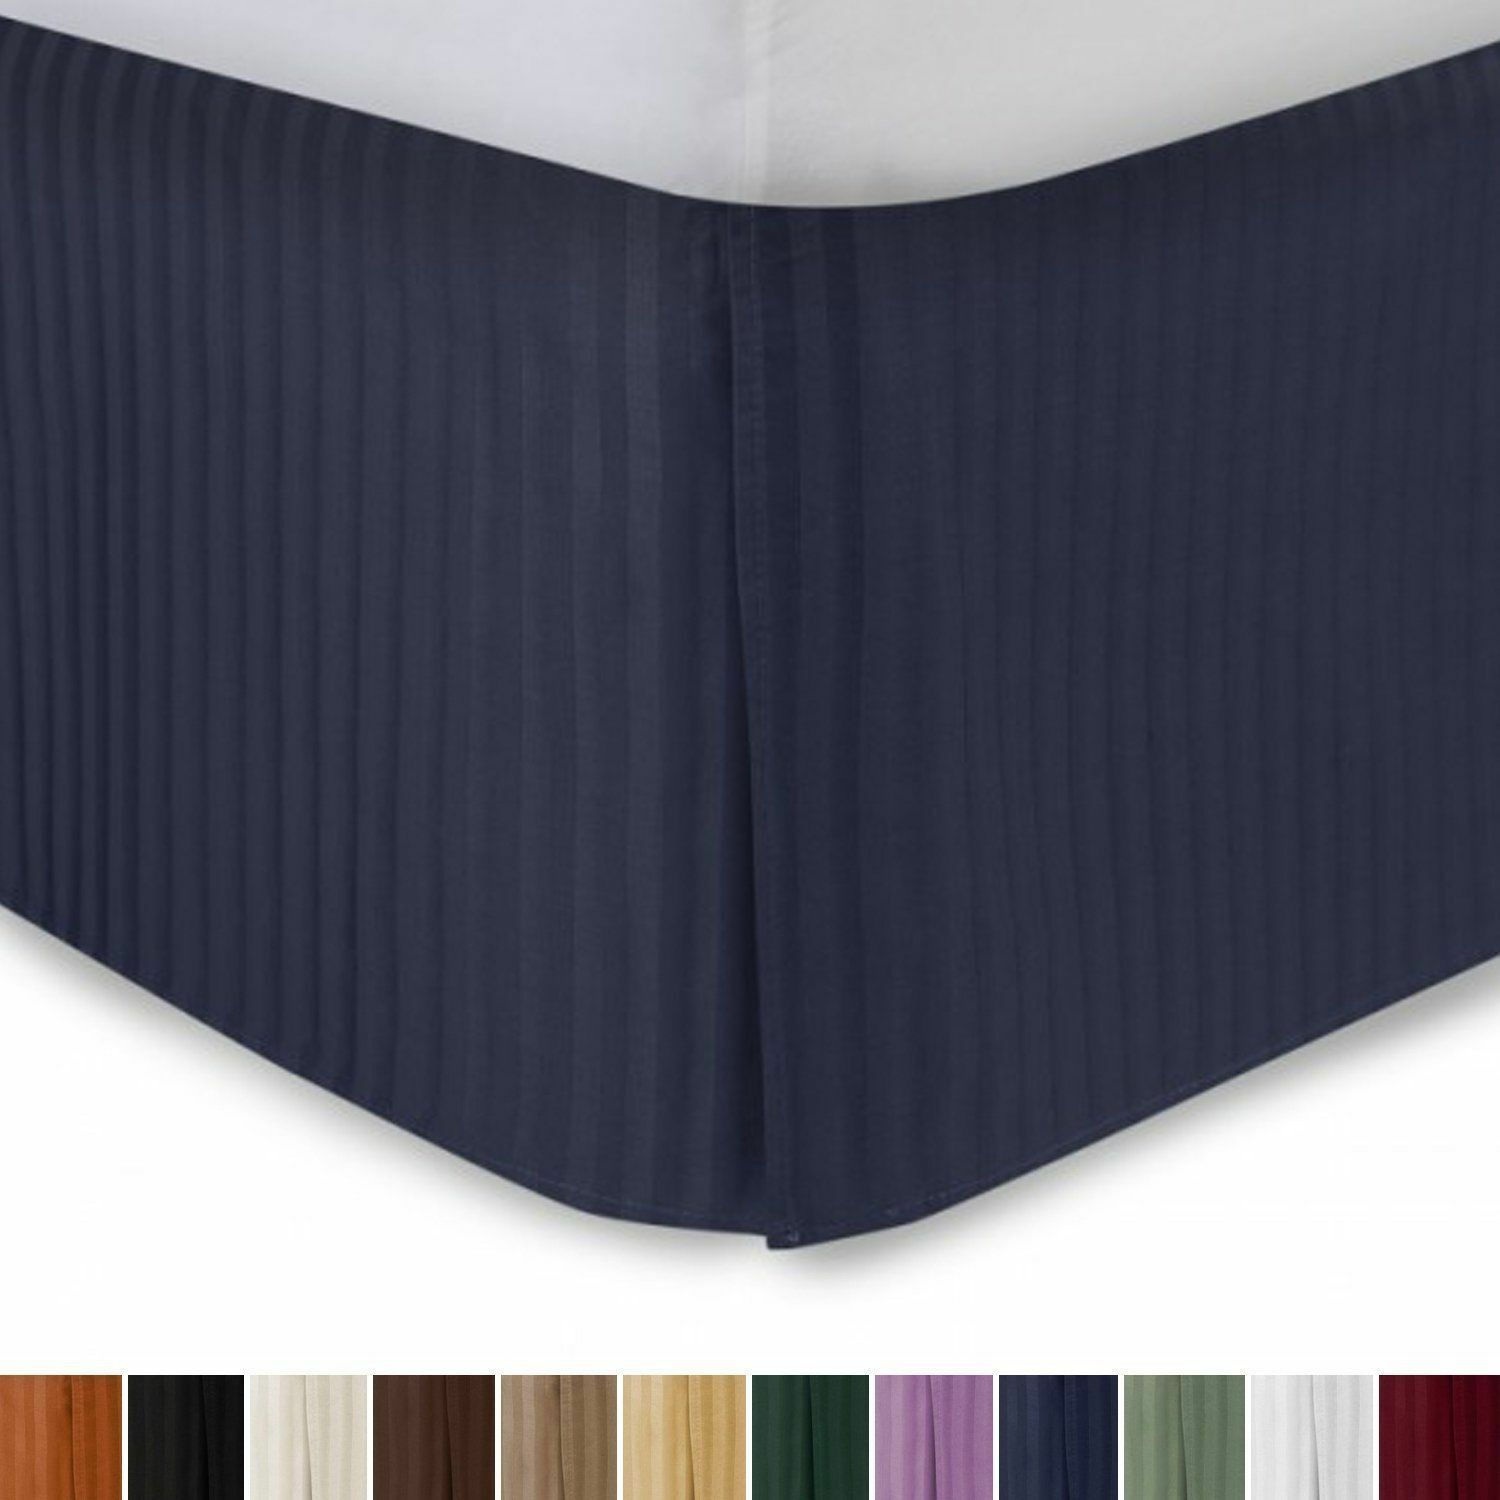 1 Qty Bed Skirt (All Size US) 100% Egyptian Cotton 1000 TC Navy bluee Stripe